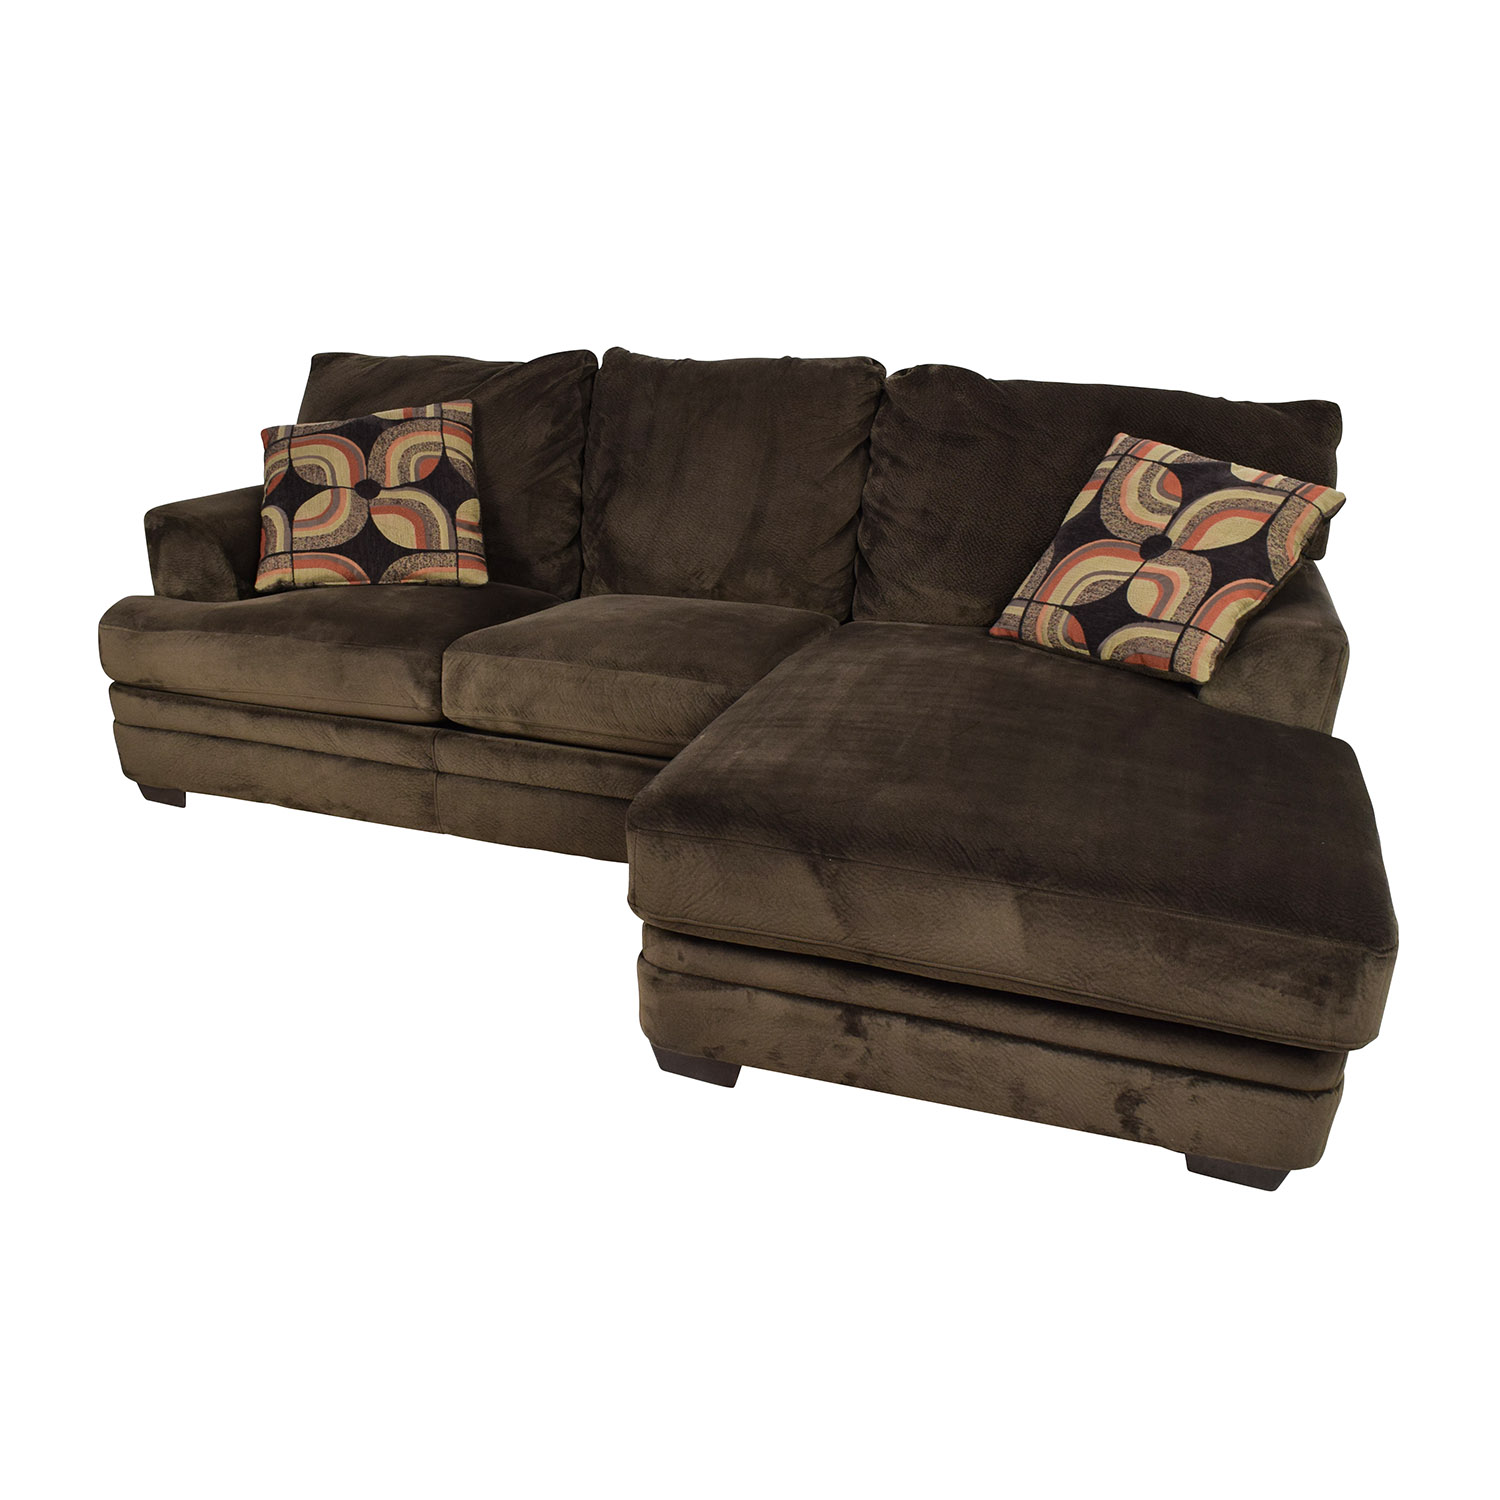 Sectional sofas bobs raymond and flanigan sofas white sofa for Sectional furniture